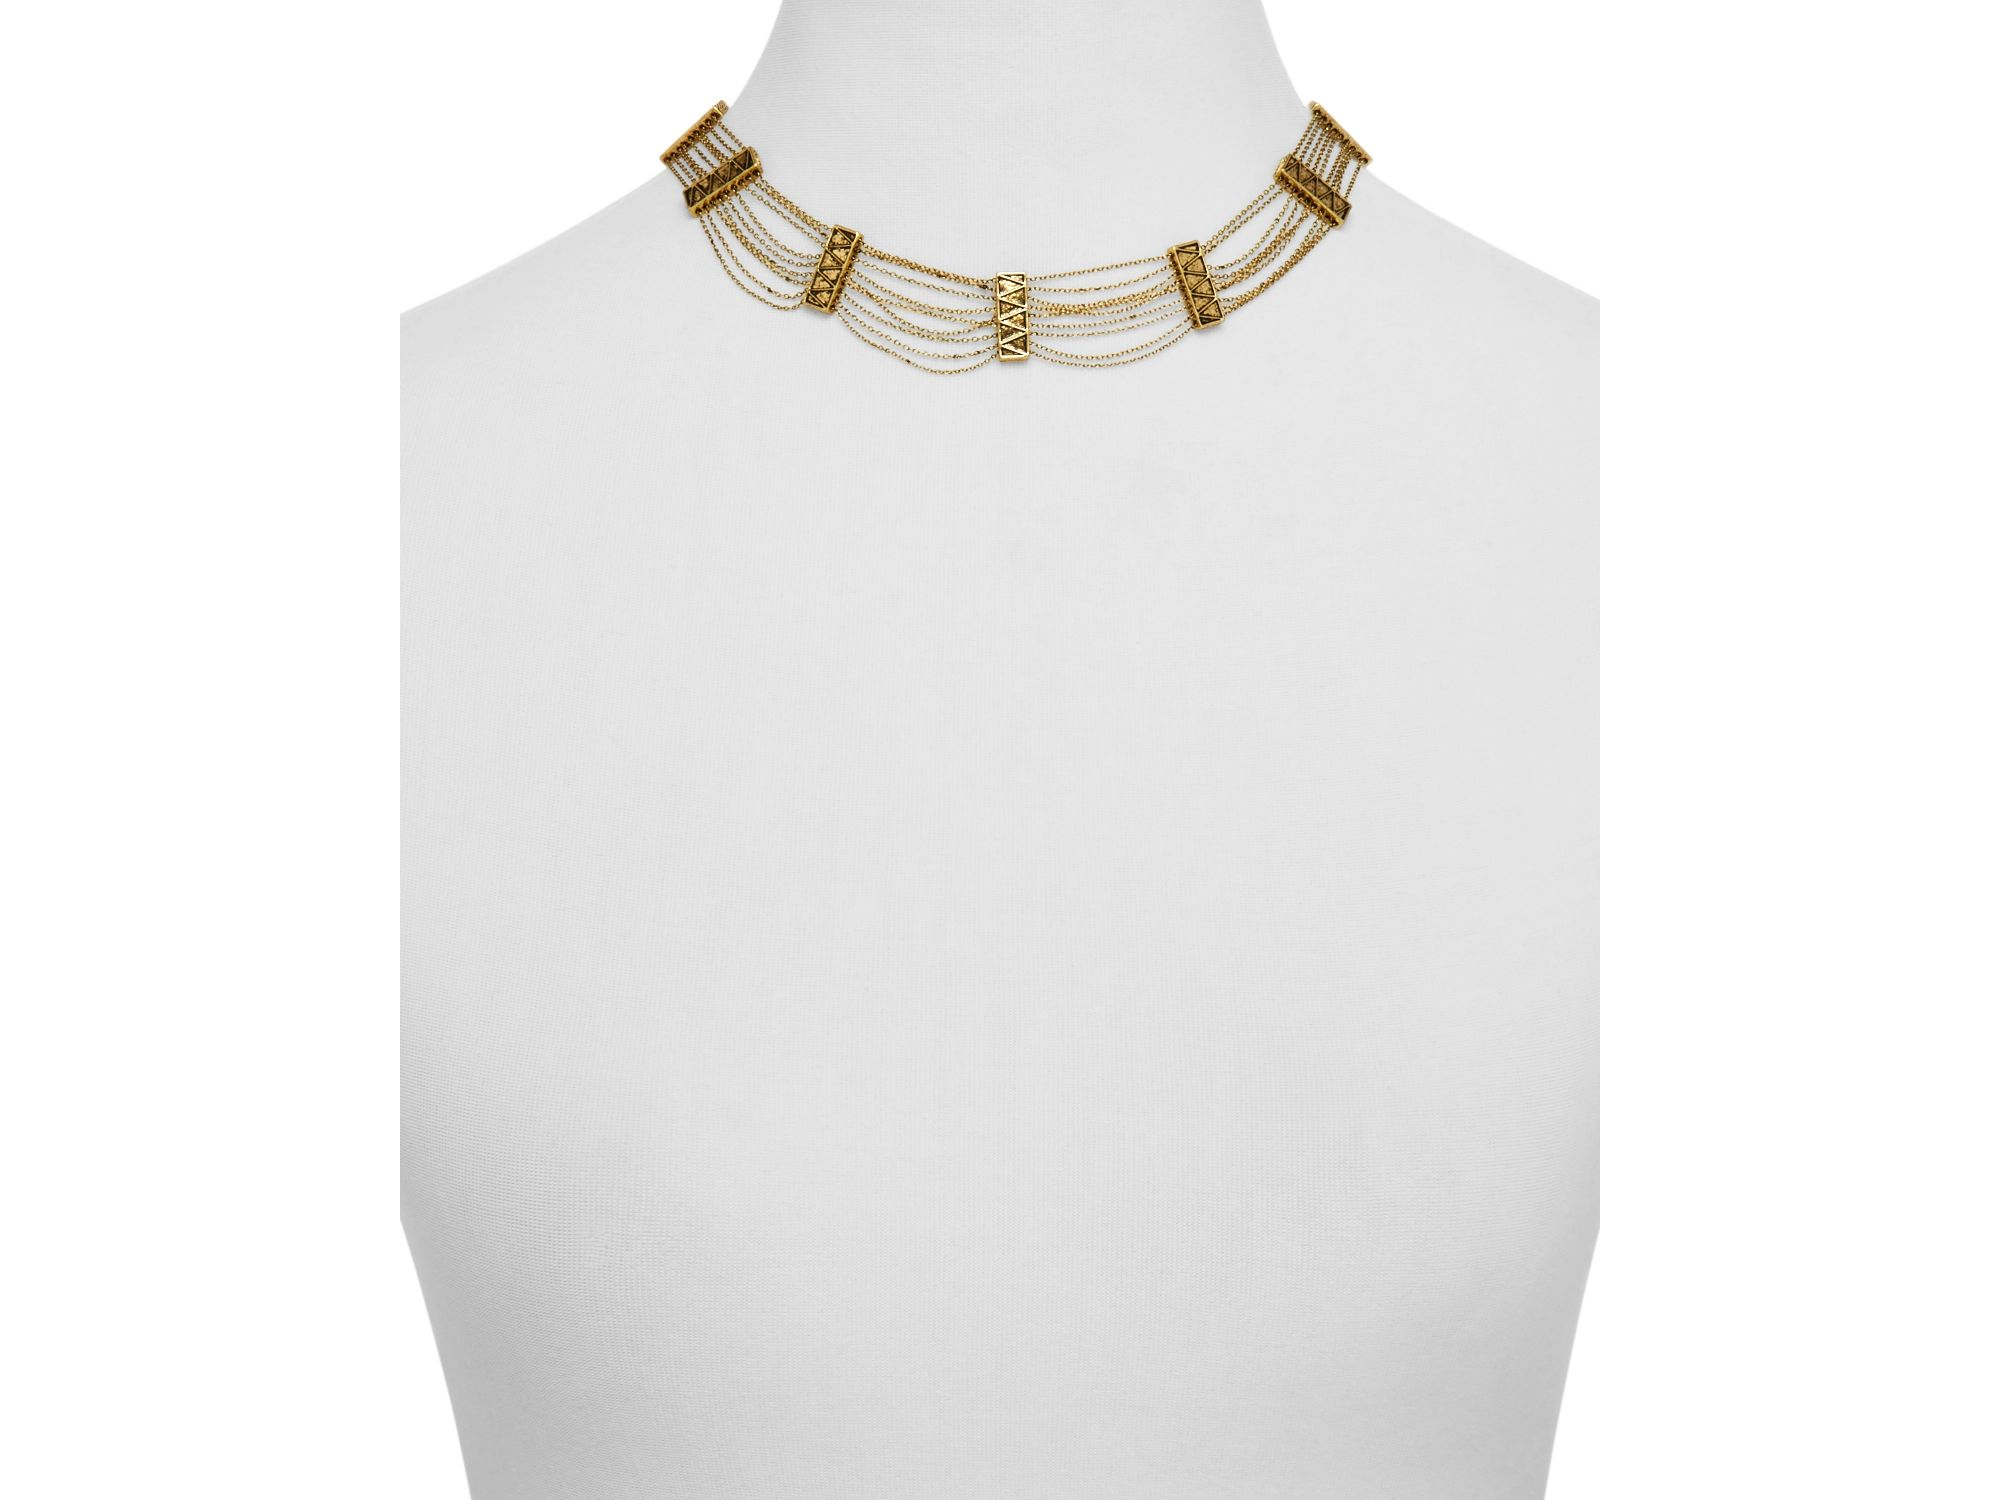 House Of Harlow House of Harlow Peak To Peak Pendant Necklace in Metallic Gold 38oVG1